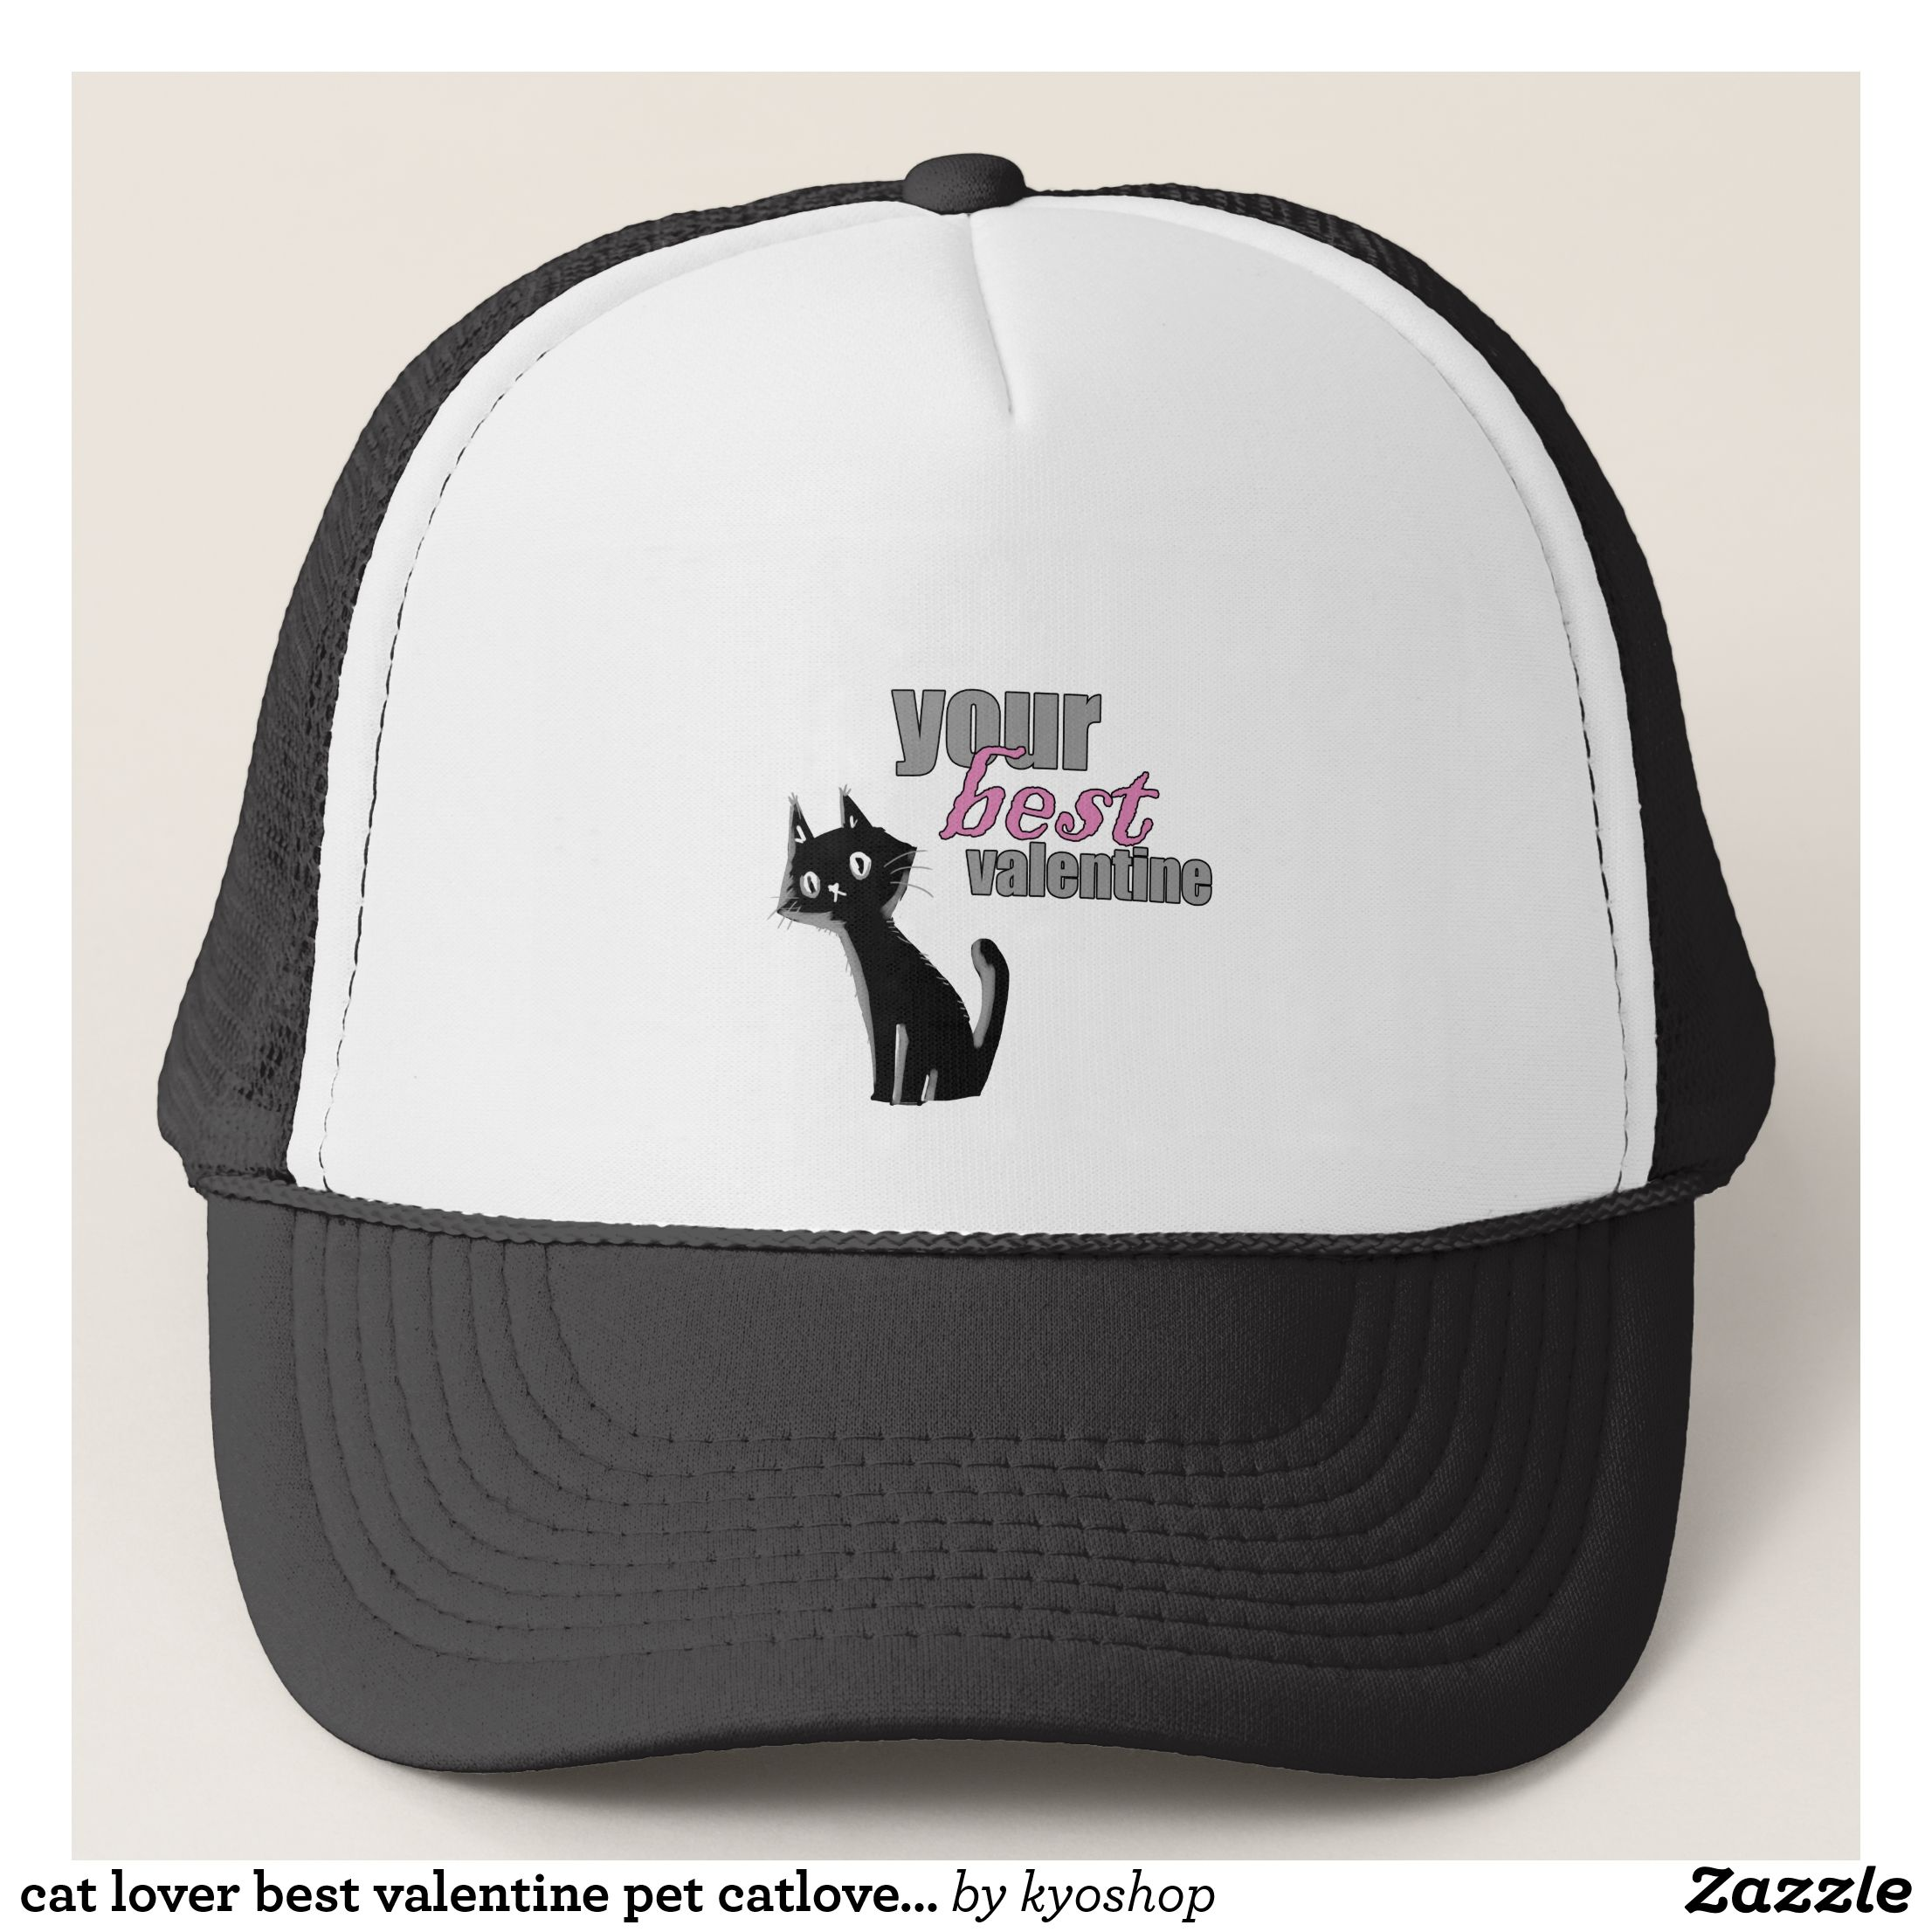 cat lover best valentine pet catlover women nerdy. trucker hat - Urban  Hunter Fisher Farmer Redneck Hats By Talented Fashion And Graphic Designers  -  hats ... 23c1c522f371